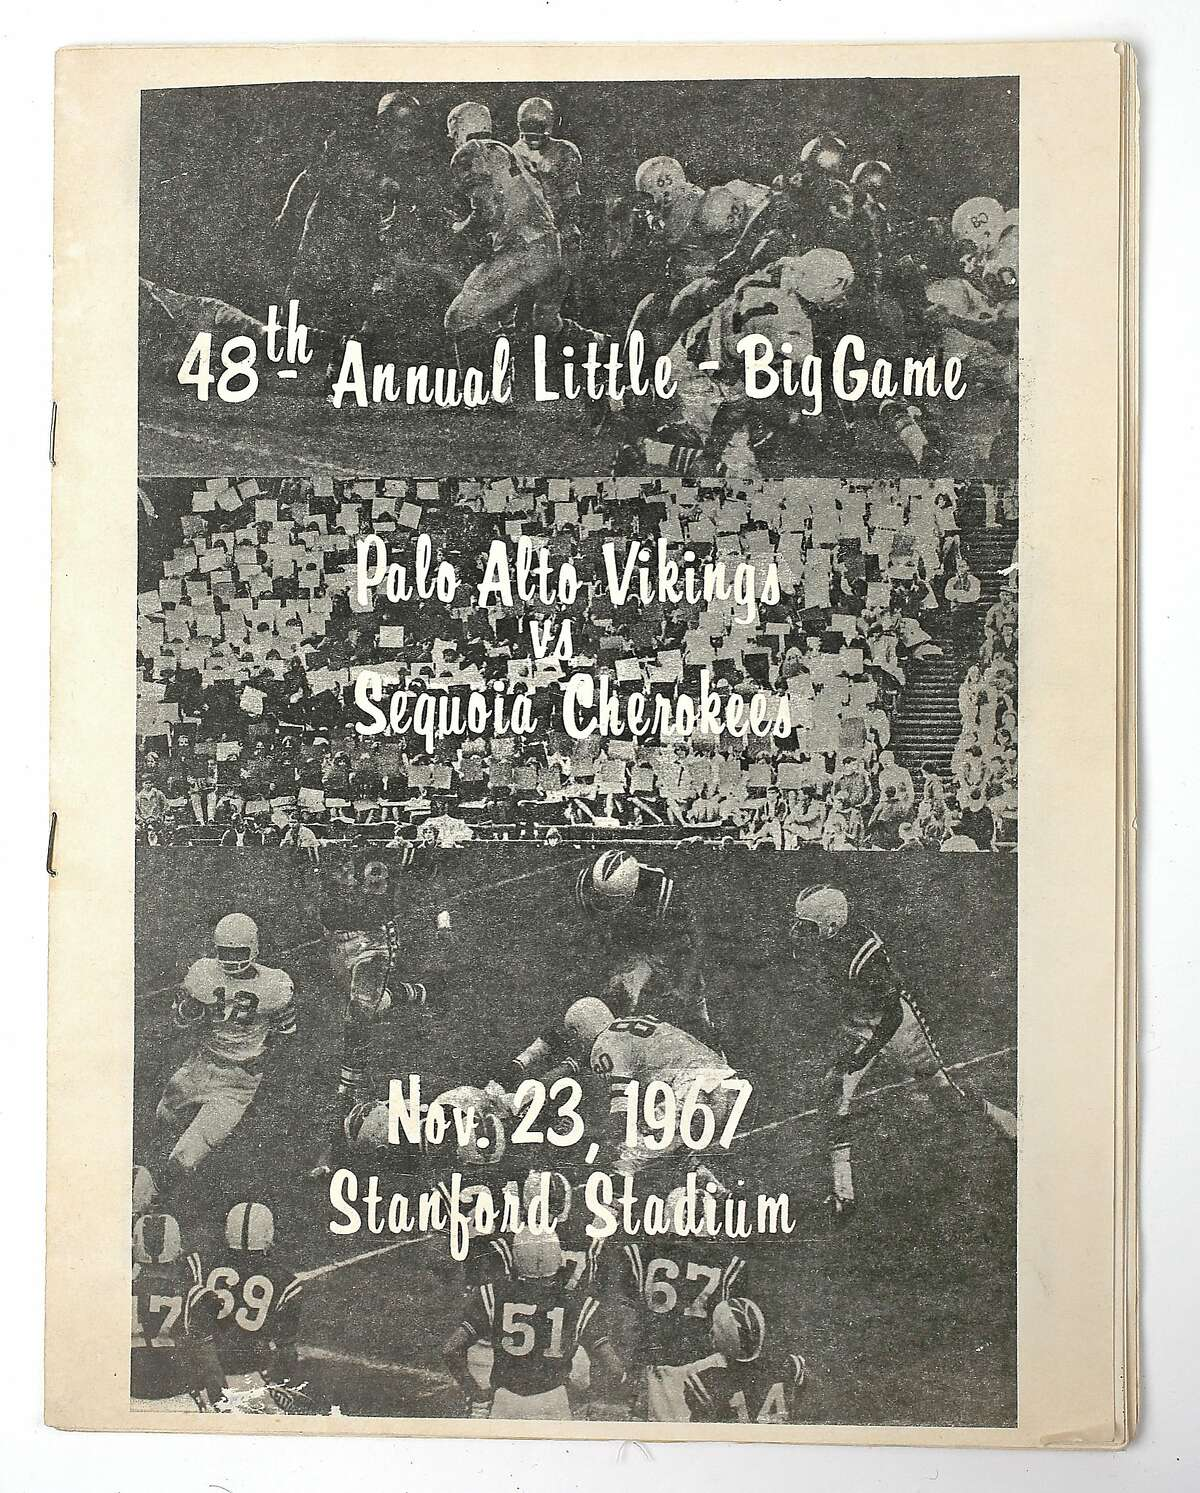 This program was designed and printed by the graphic arts department at Palo Alto High School for the 1967 Little Big Game between Sequoia and Palo Alto.